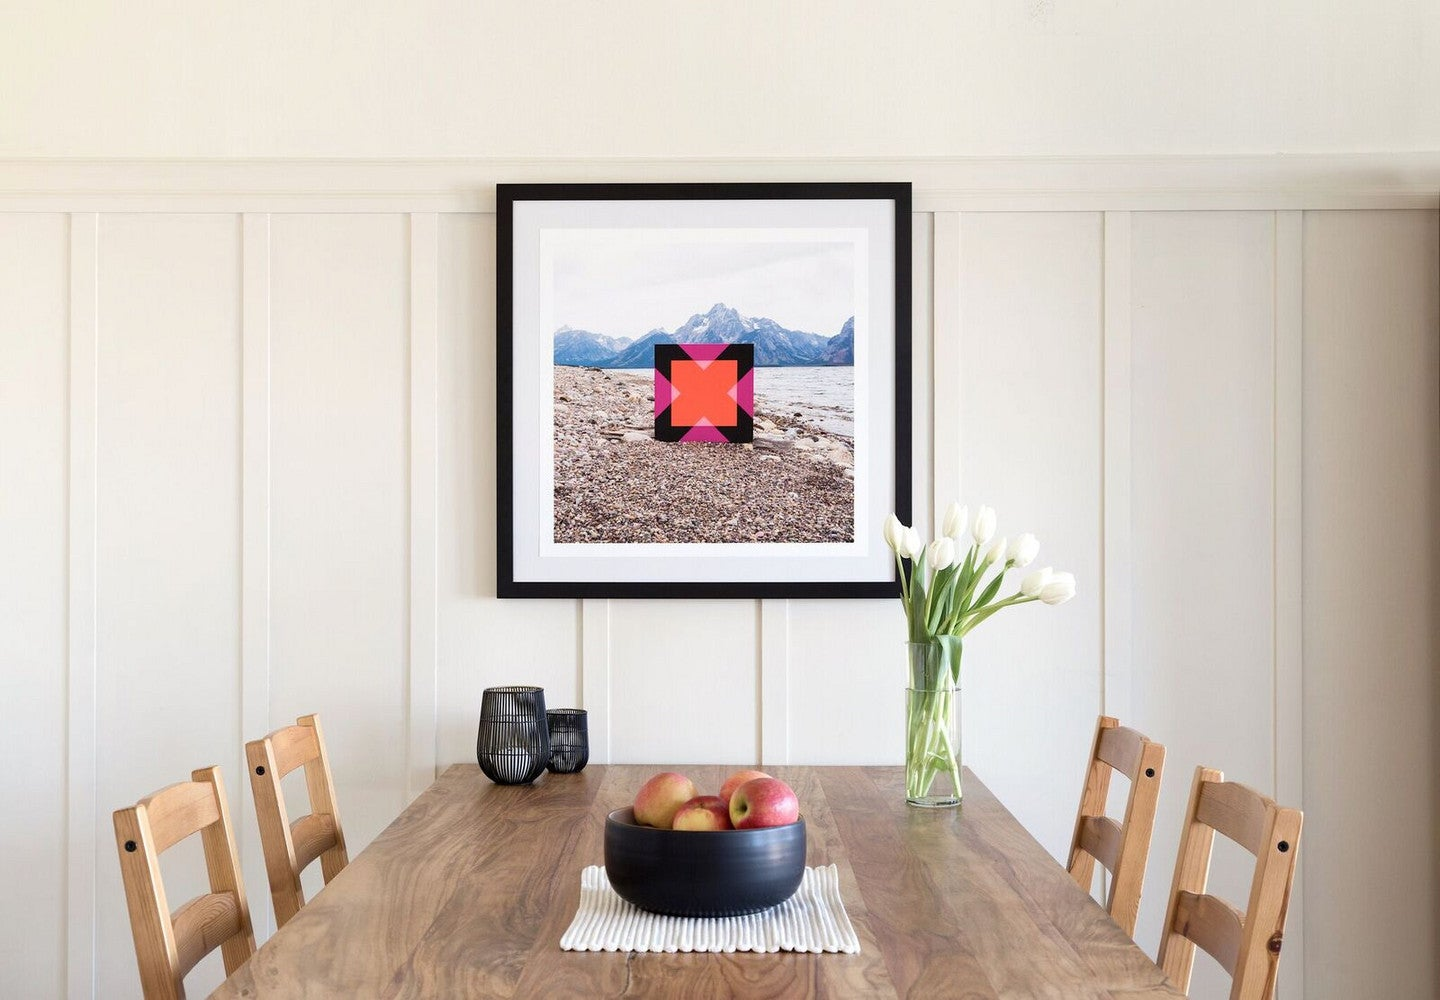 Meum, The Affordable Art Delivery Service To Try Now